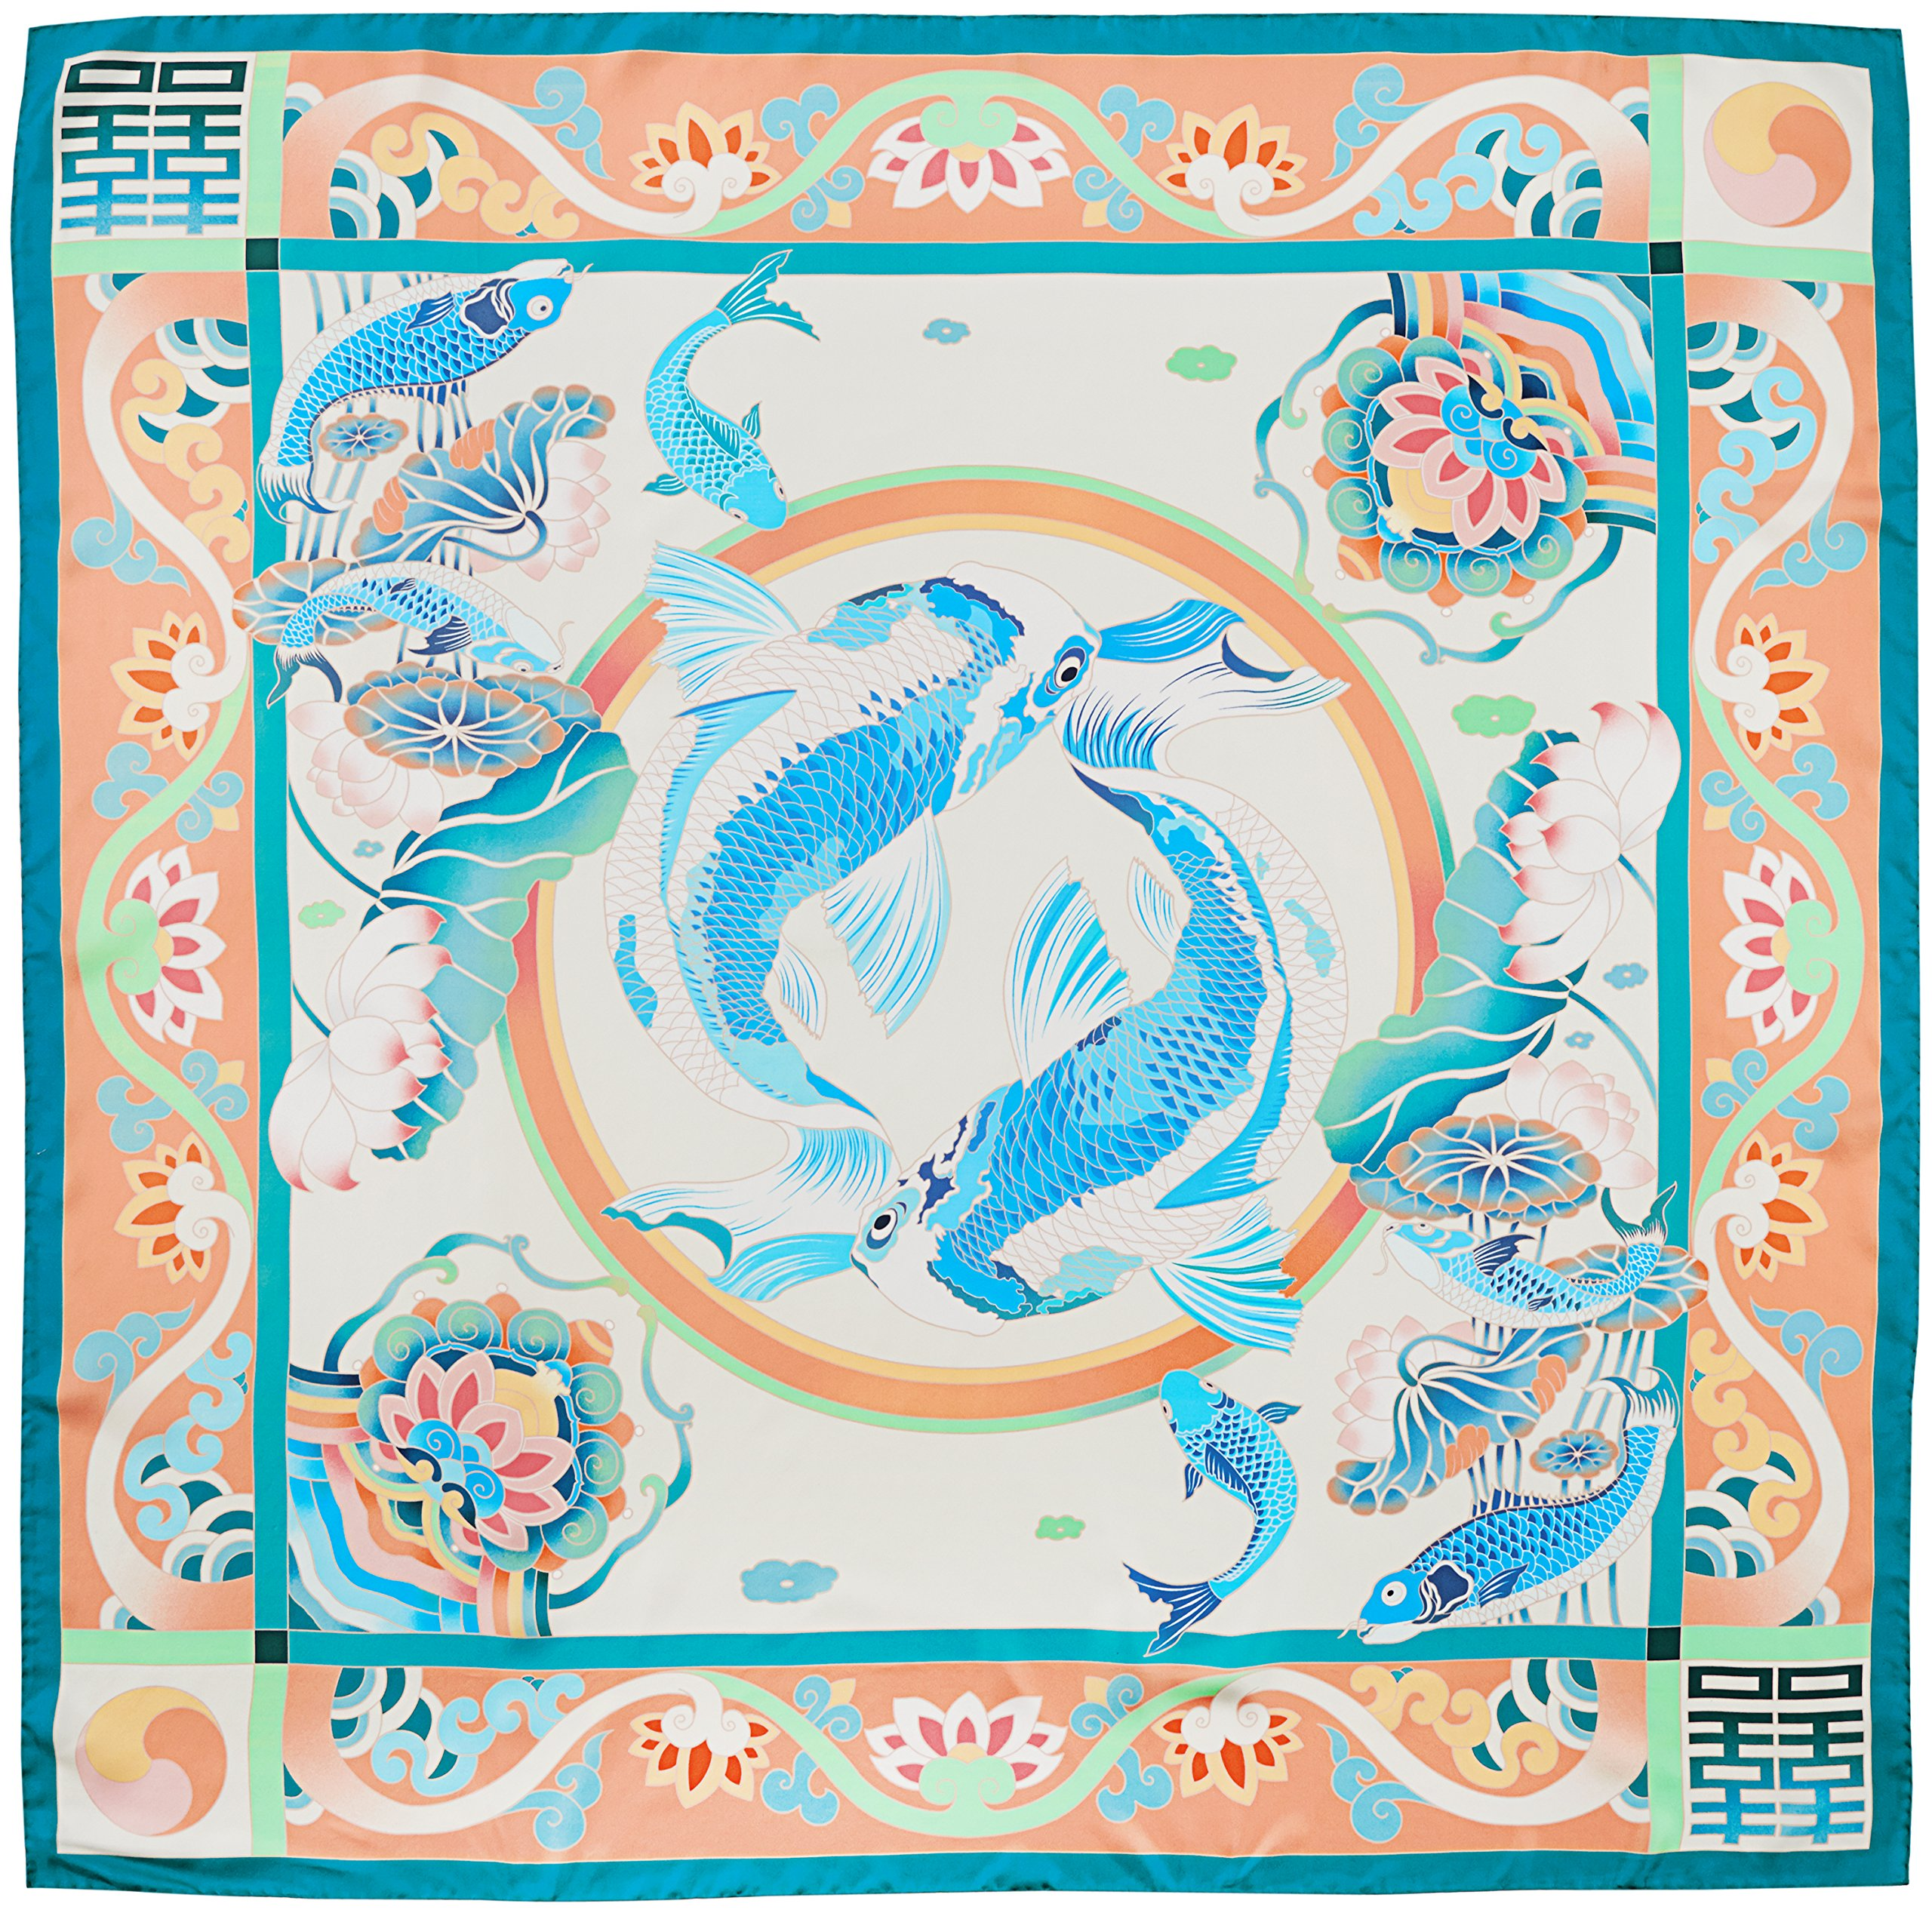 R. Culturi Handmade in Italy Silk Twill Luxury Artwork Scarf Shawl (Teal/Peach) by R. Culturi